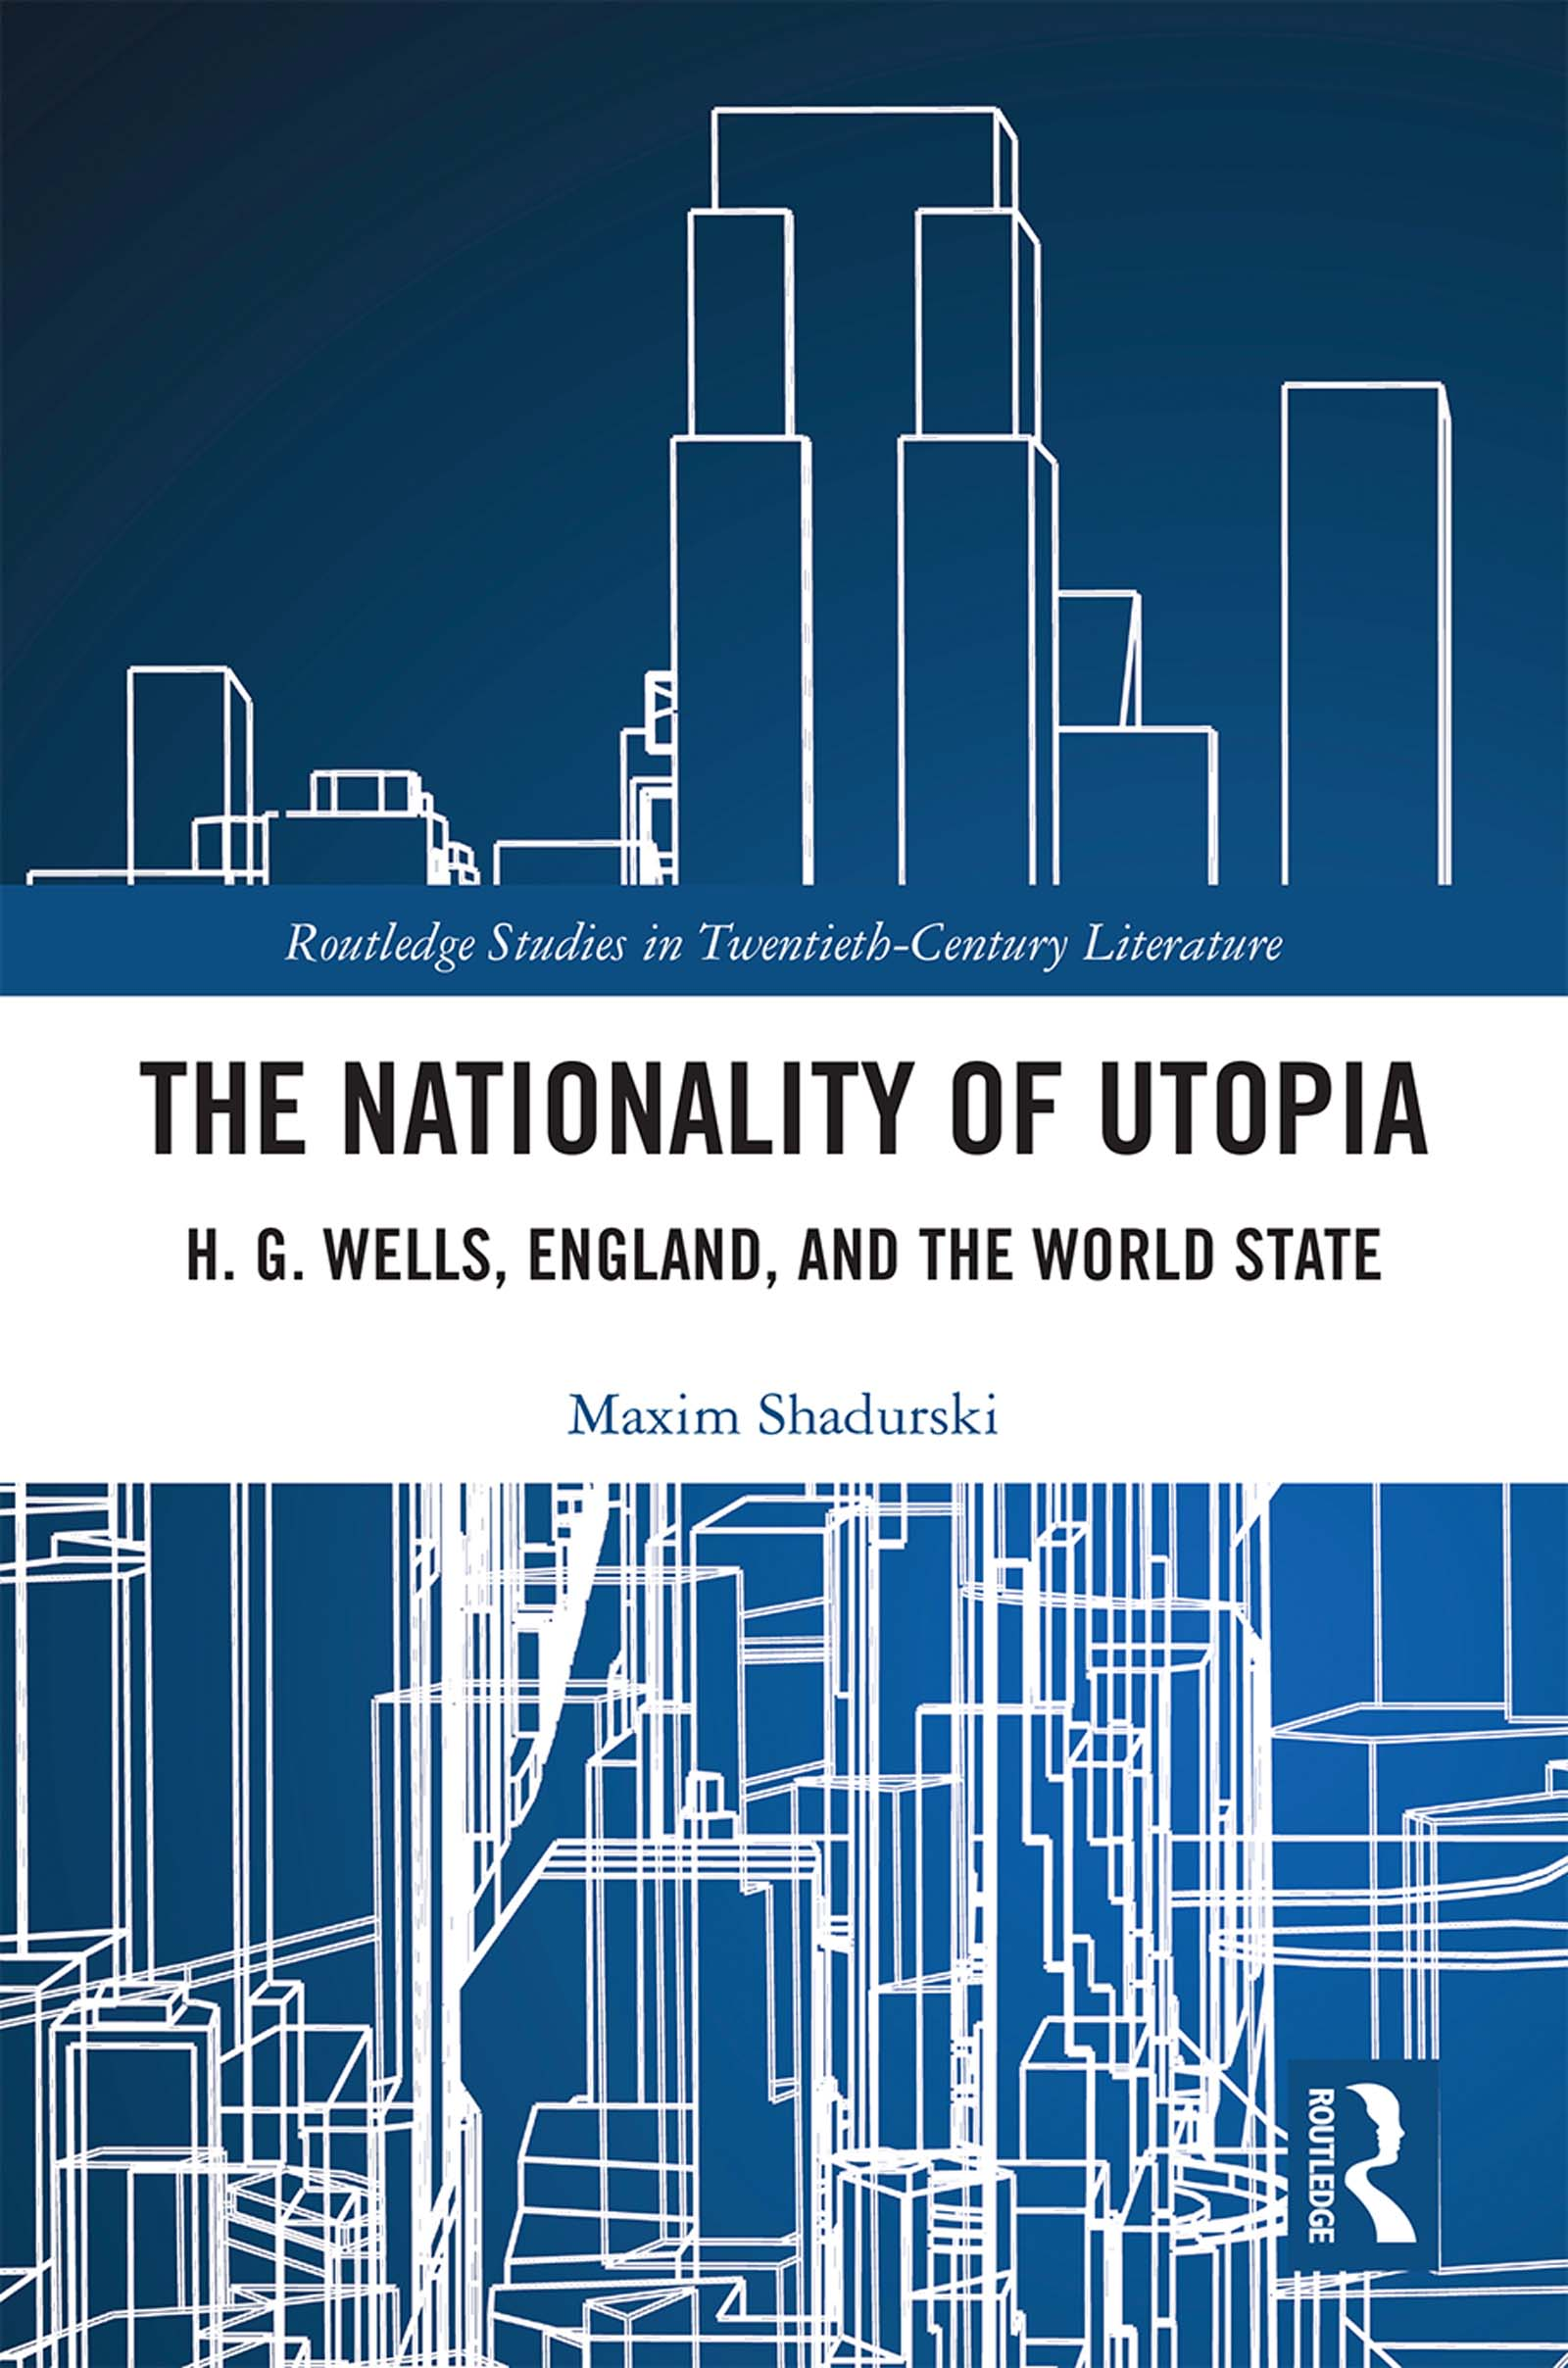 The Nationality of Utopia